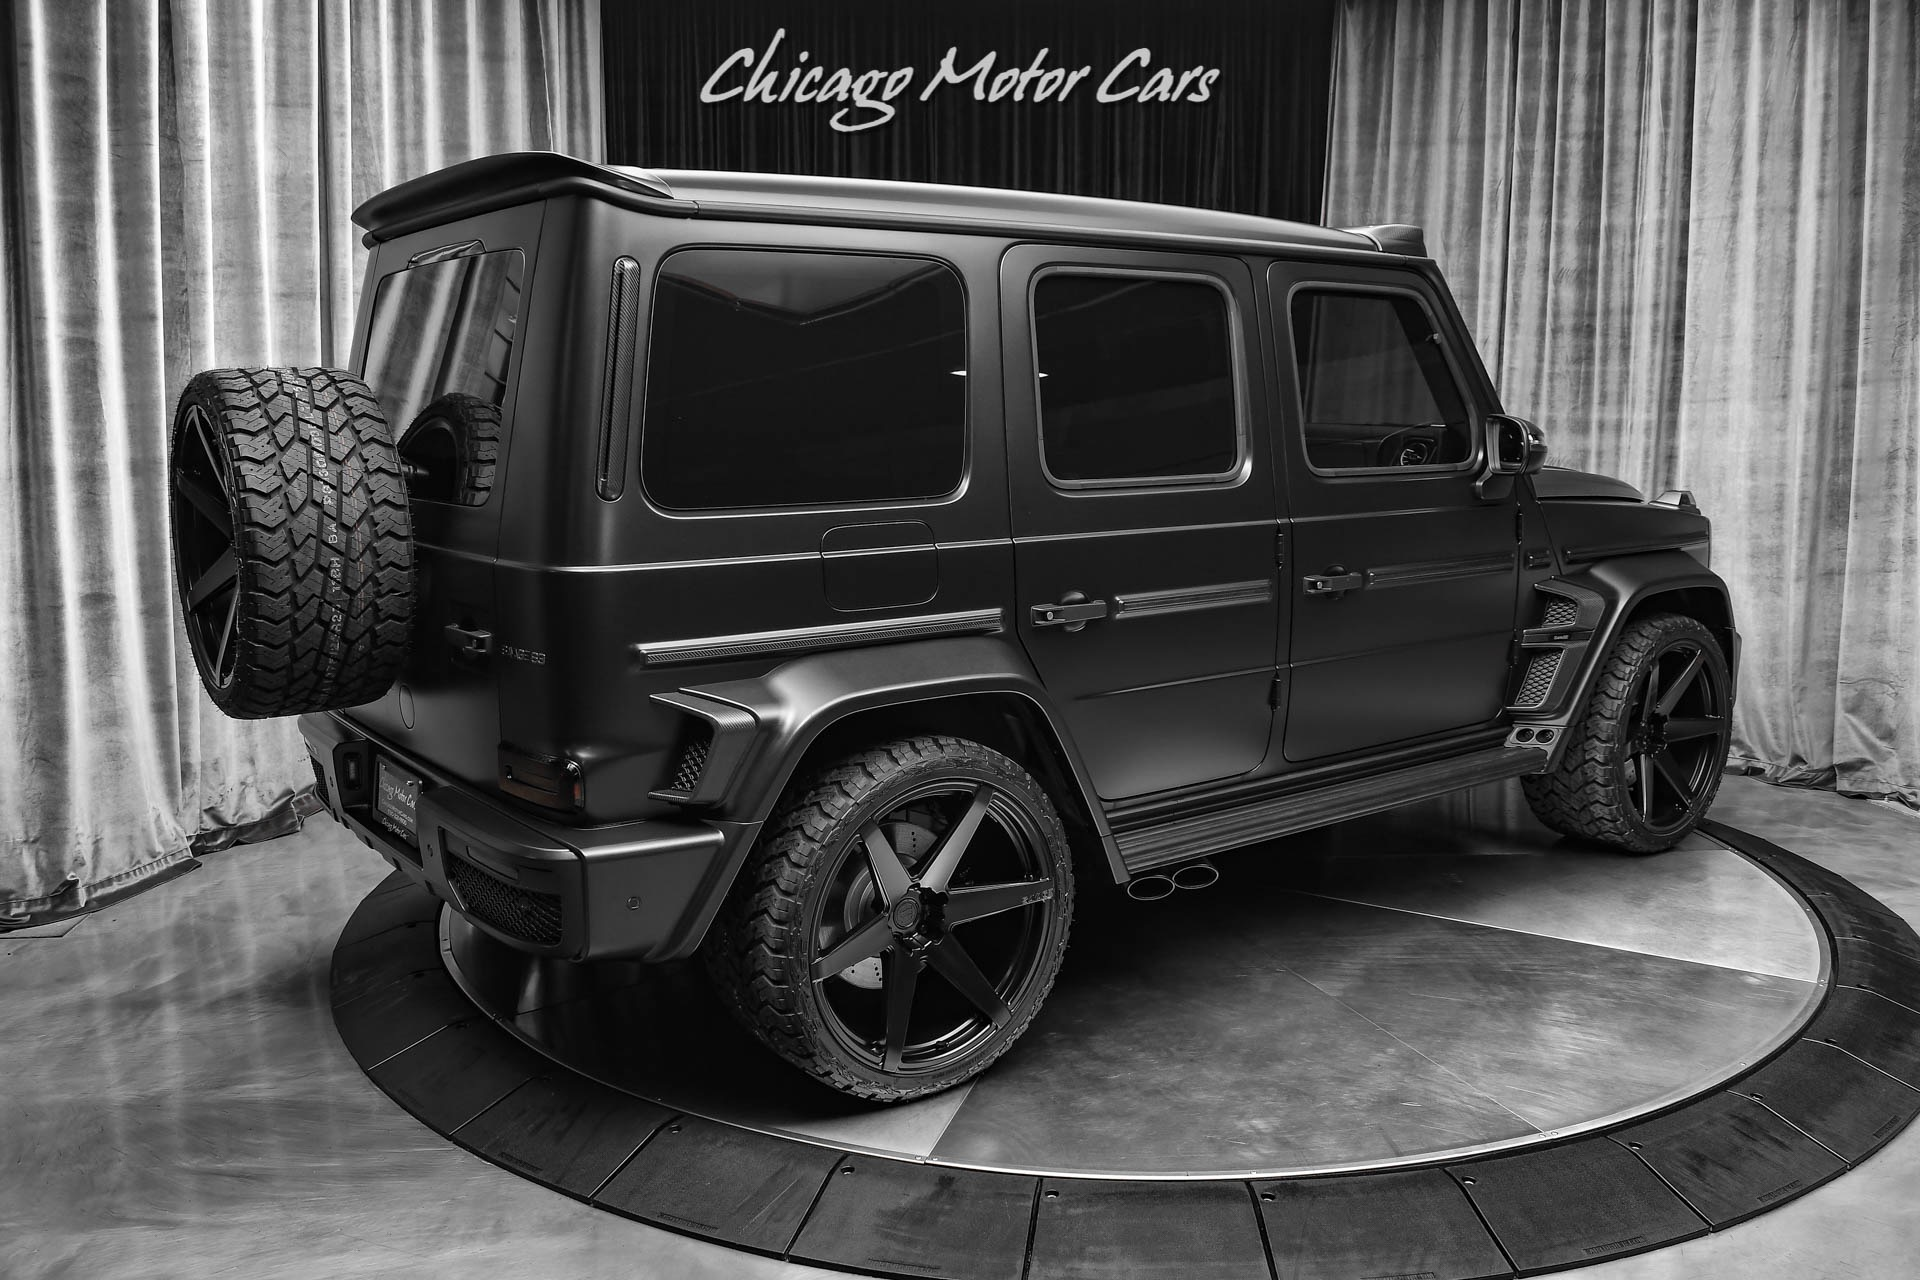 Used-2020-Mercedes-Benz-G-Class-G-63-AMG-SAVAGE-EDITION-SUV